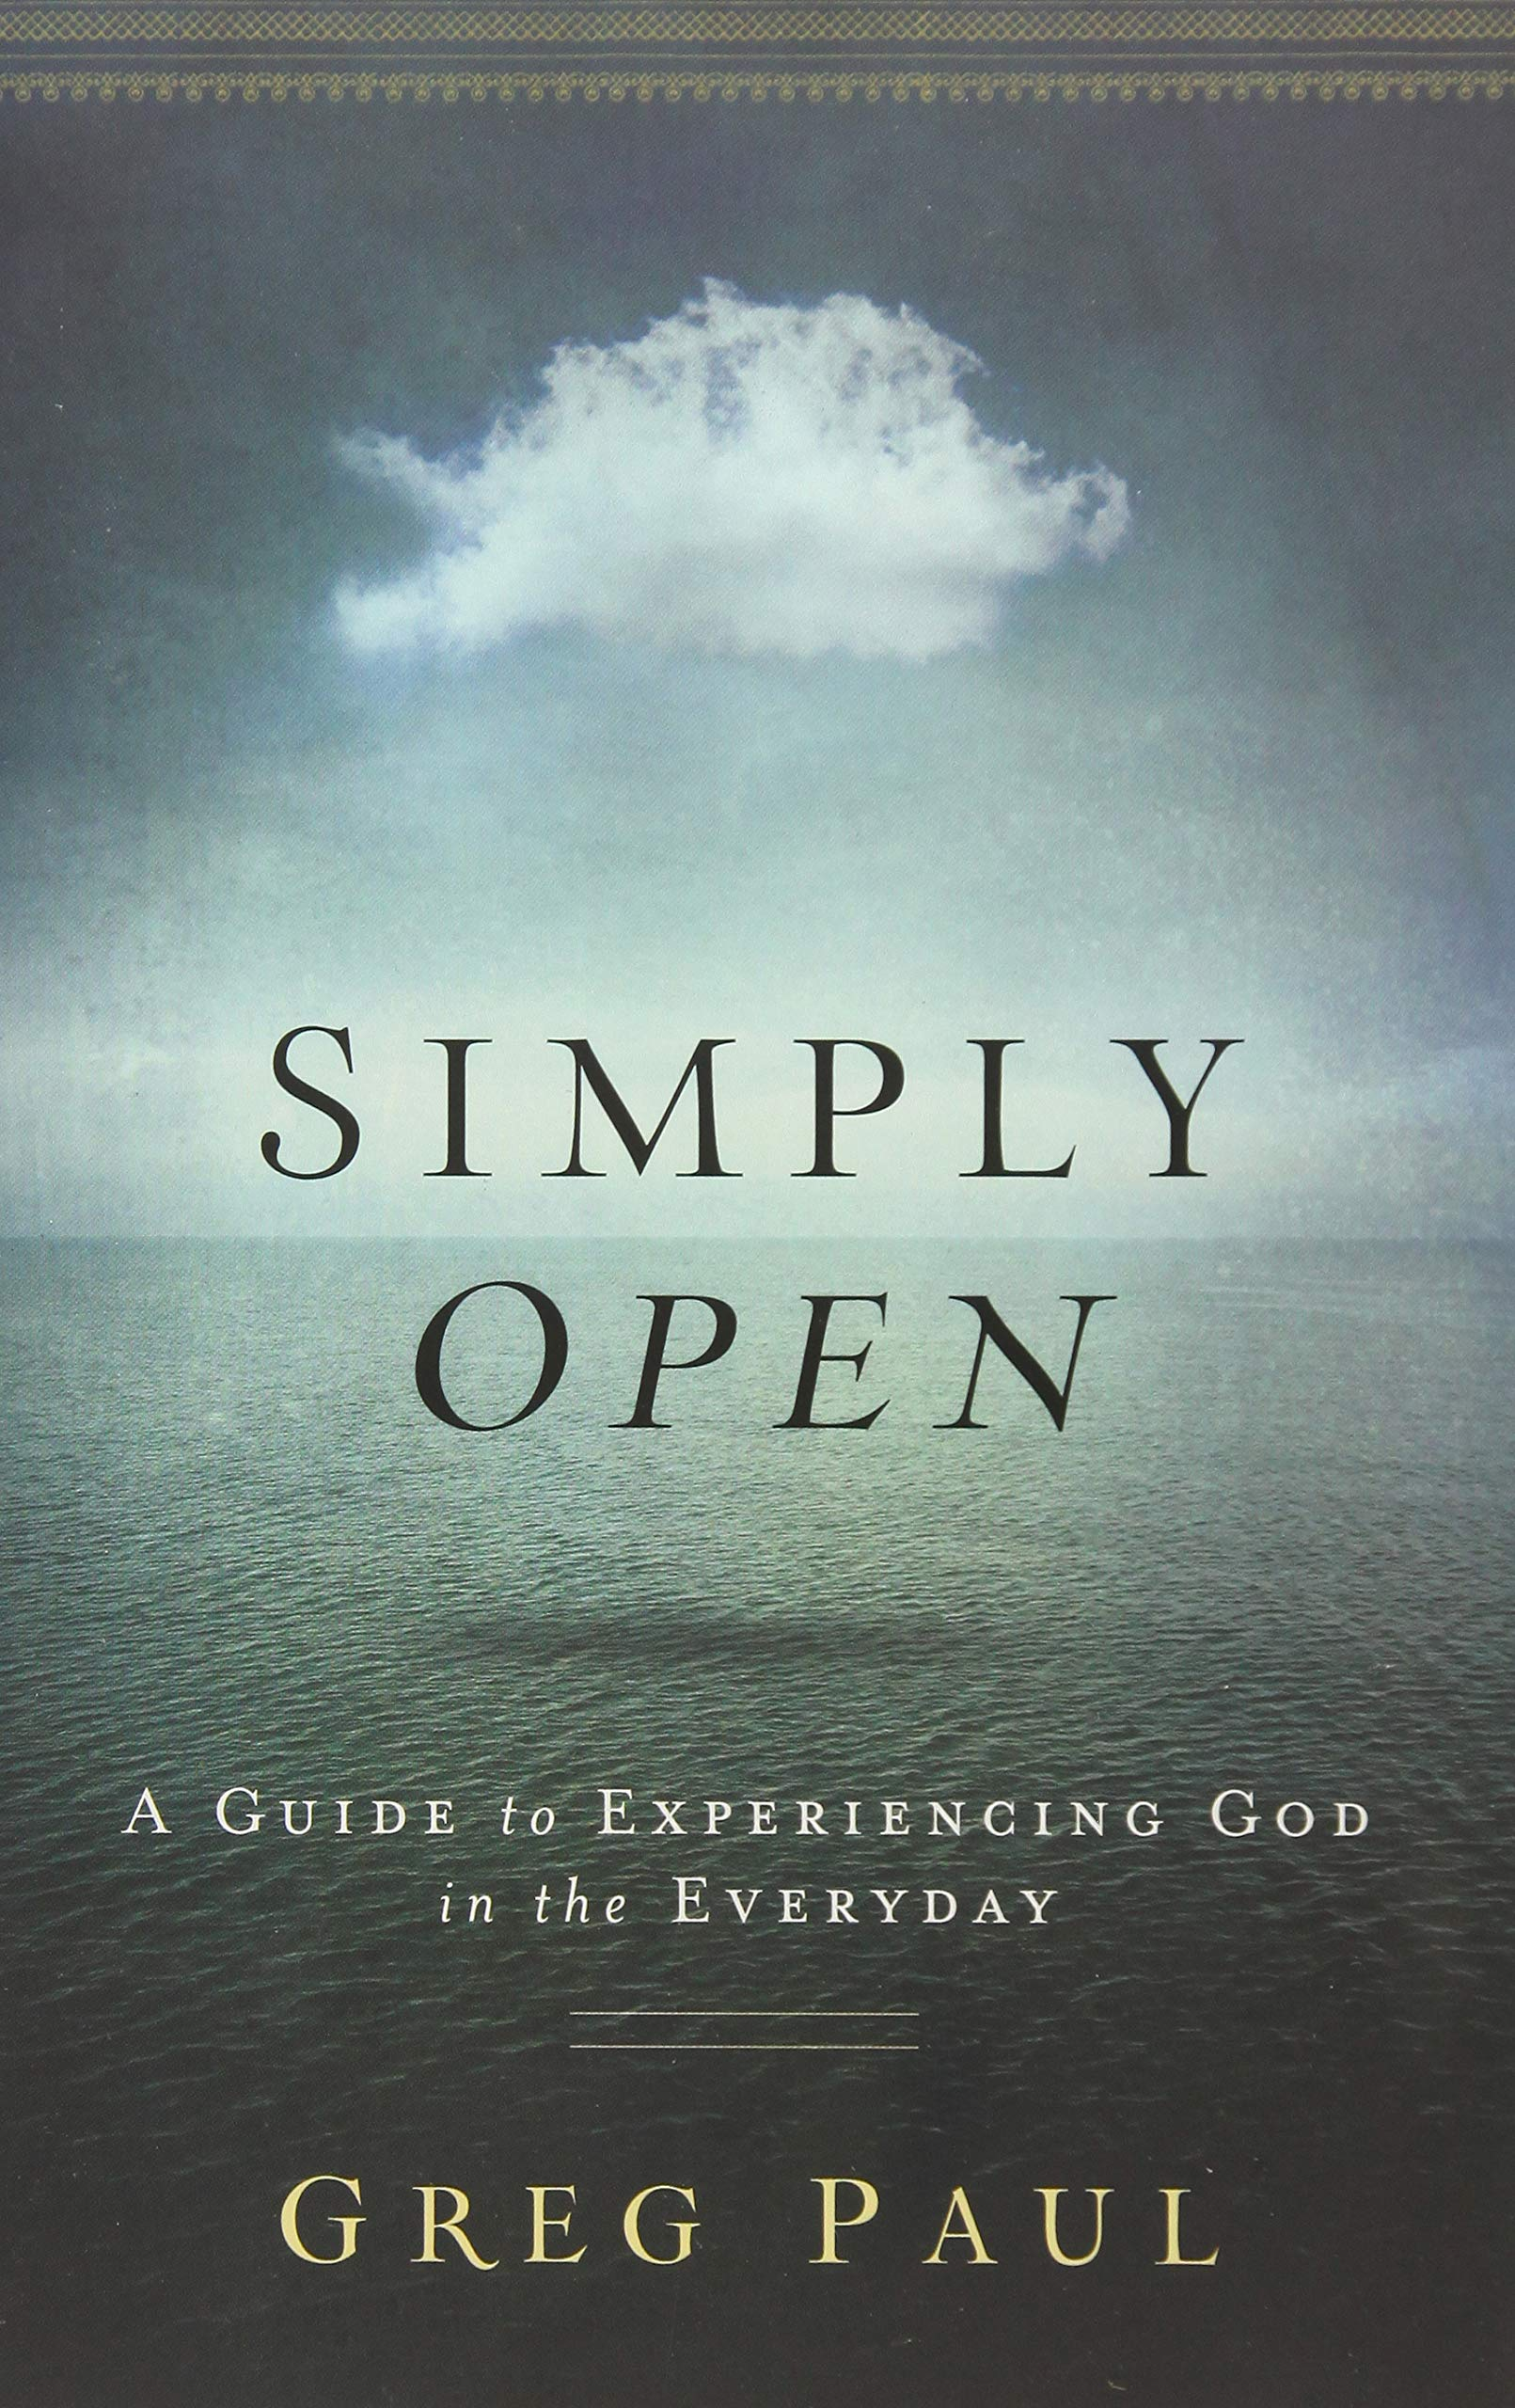 Simply Open: A Guide to Experiencing God in the Everyday